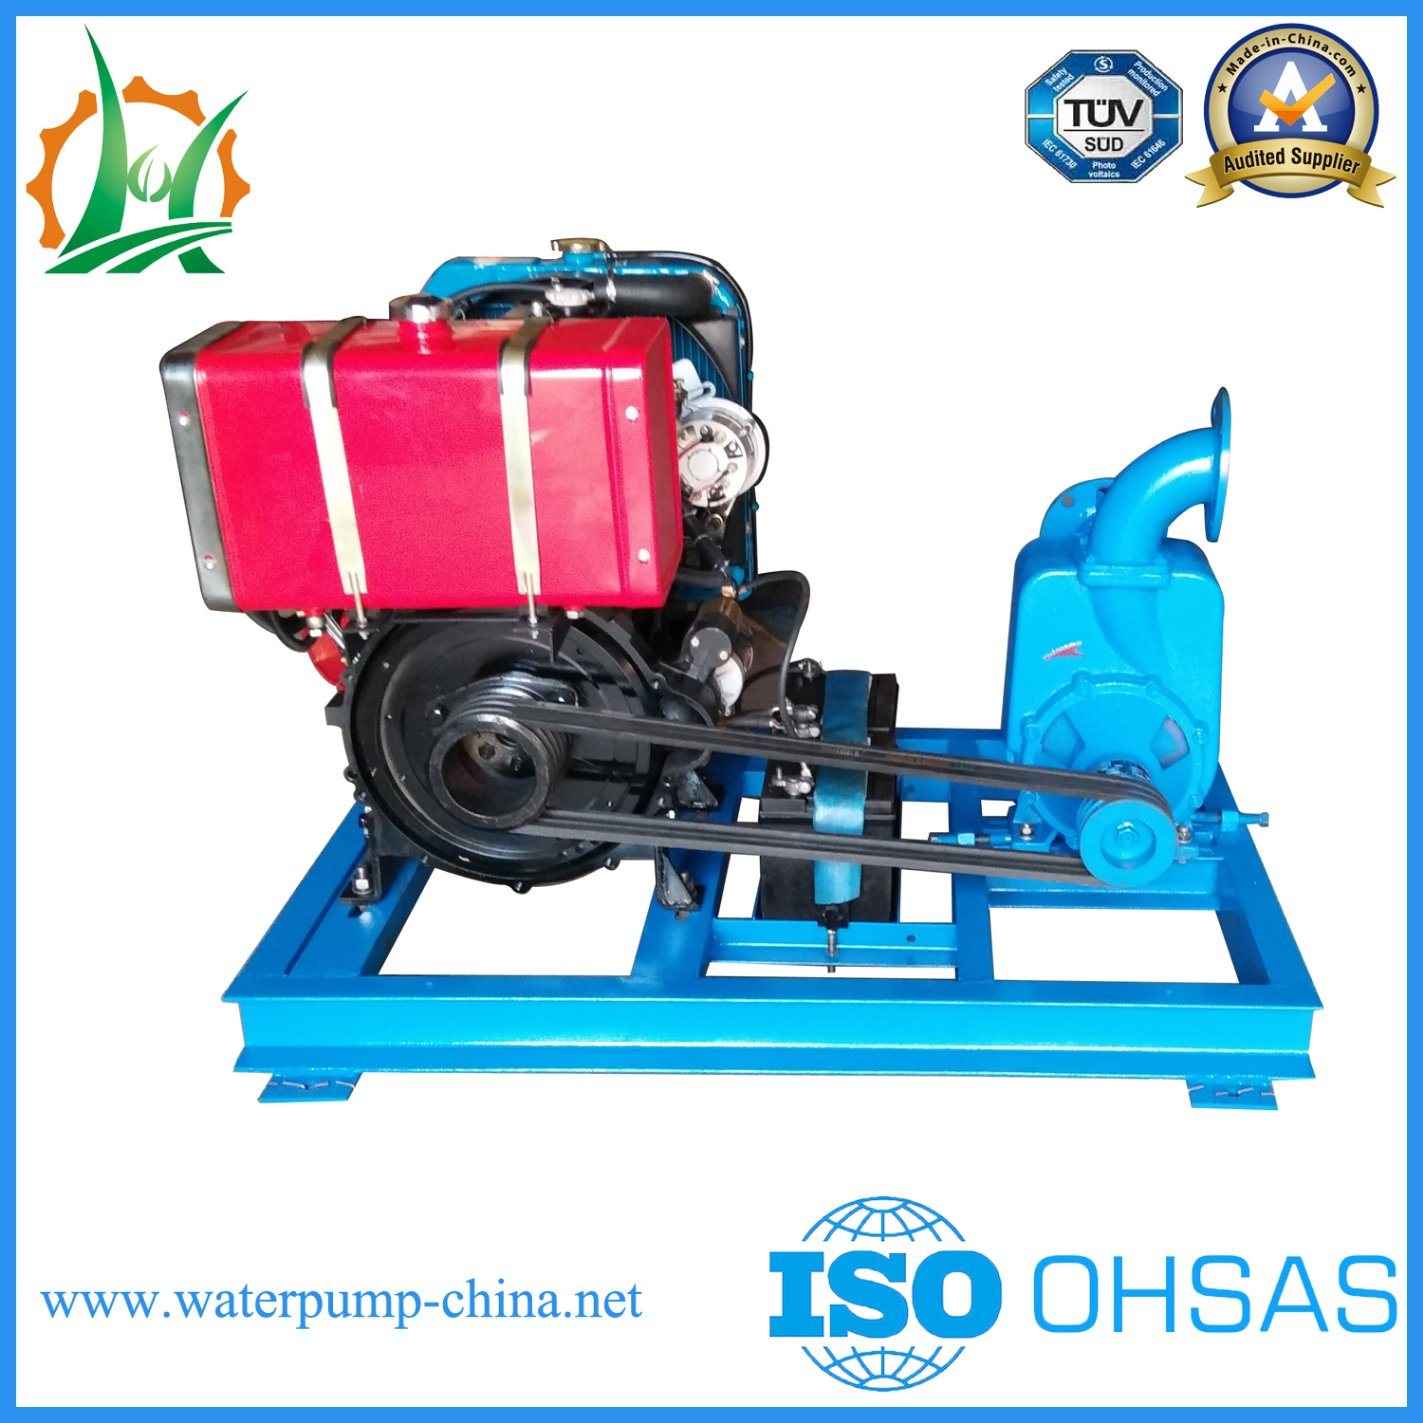 3 Inch Self Priming Diesel Engine Belt Driven Centrifugal Water Pump